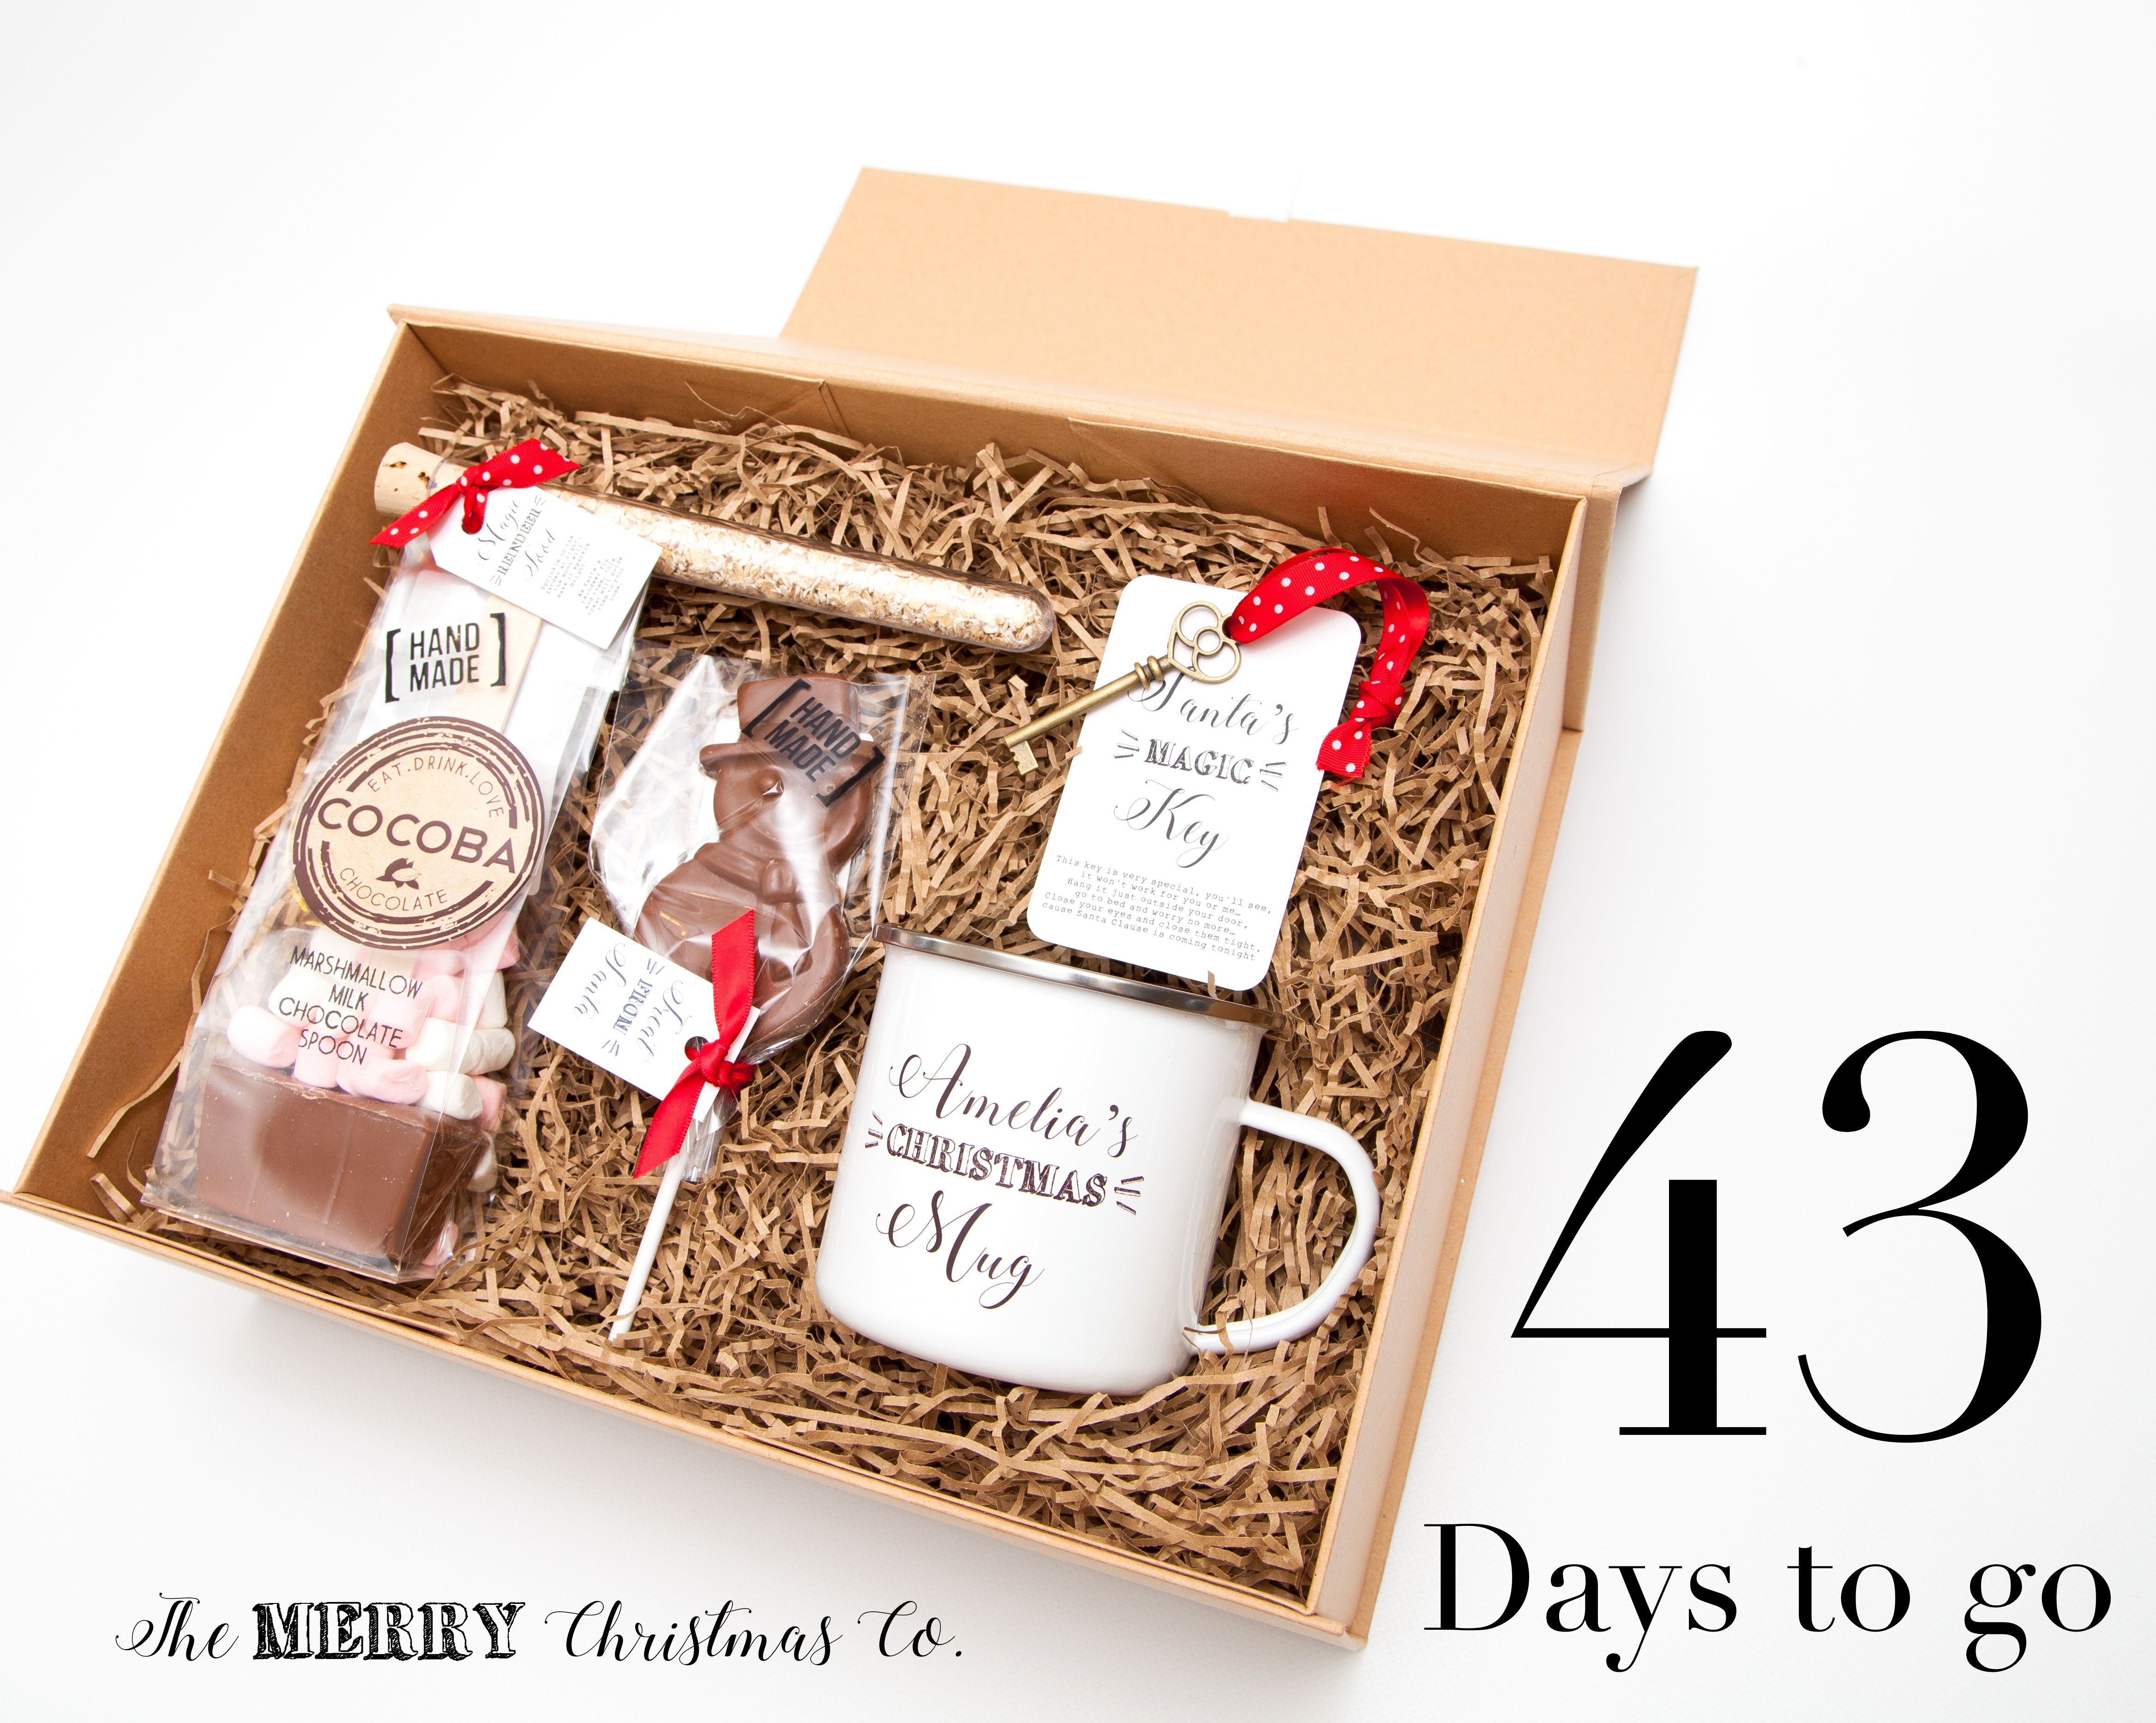 Only 43 more days till christmas woohoo! have you ordered